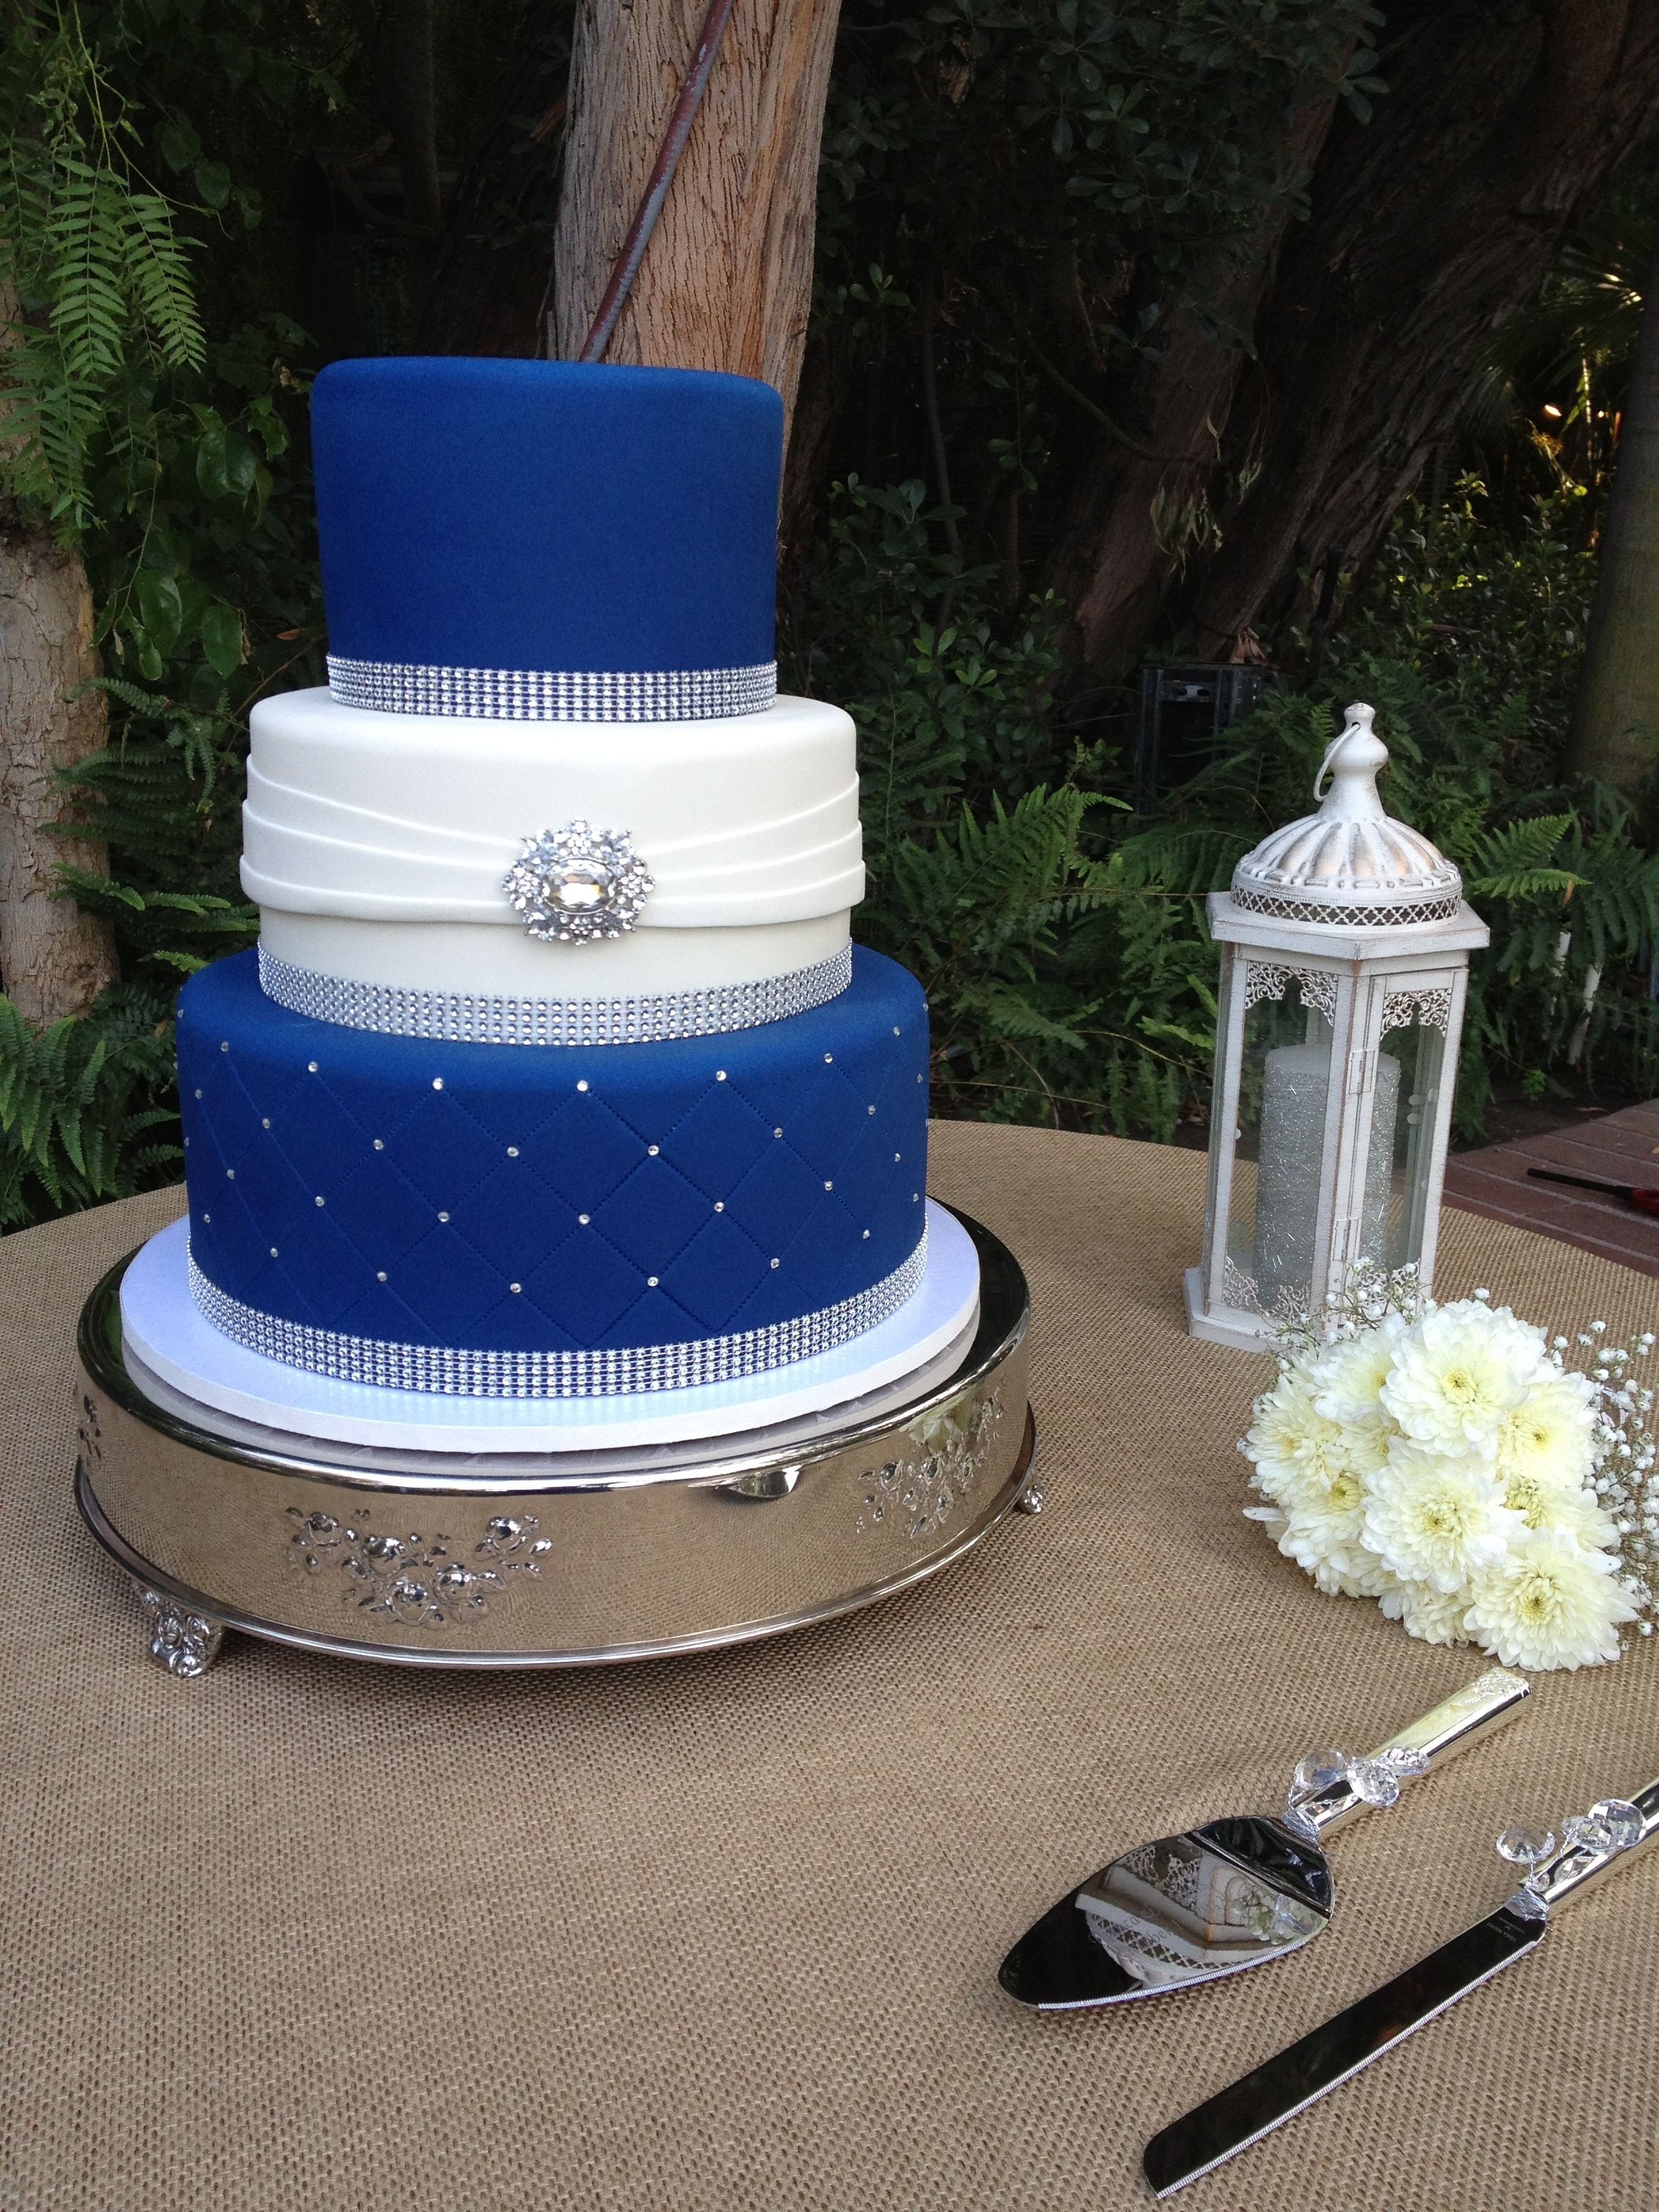 Three Tier Fondant Wedding Cake Royal Blue And White With Bling Ribbon And A Silver Broach Http Royal Blue Wedding Cakes Wedding Cakes Blue Royal Blue Cake